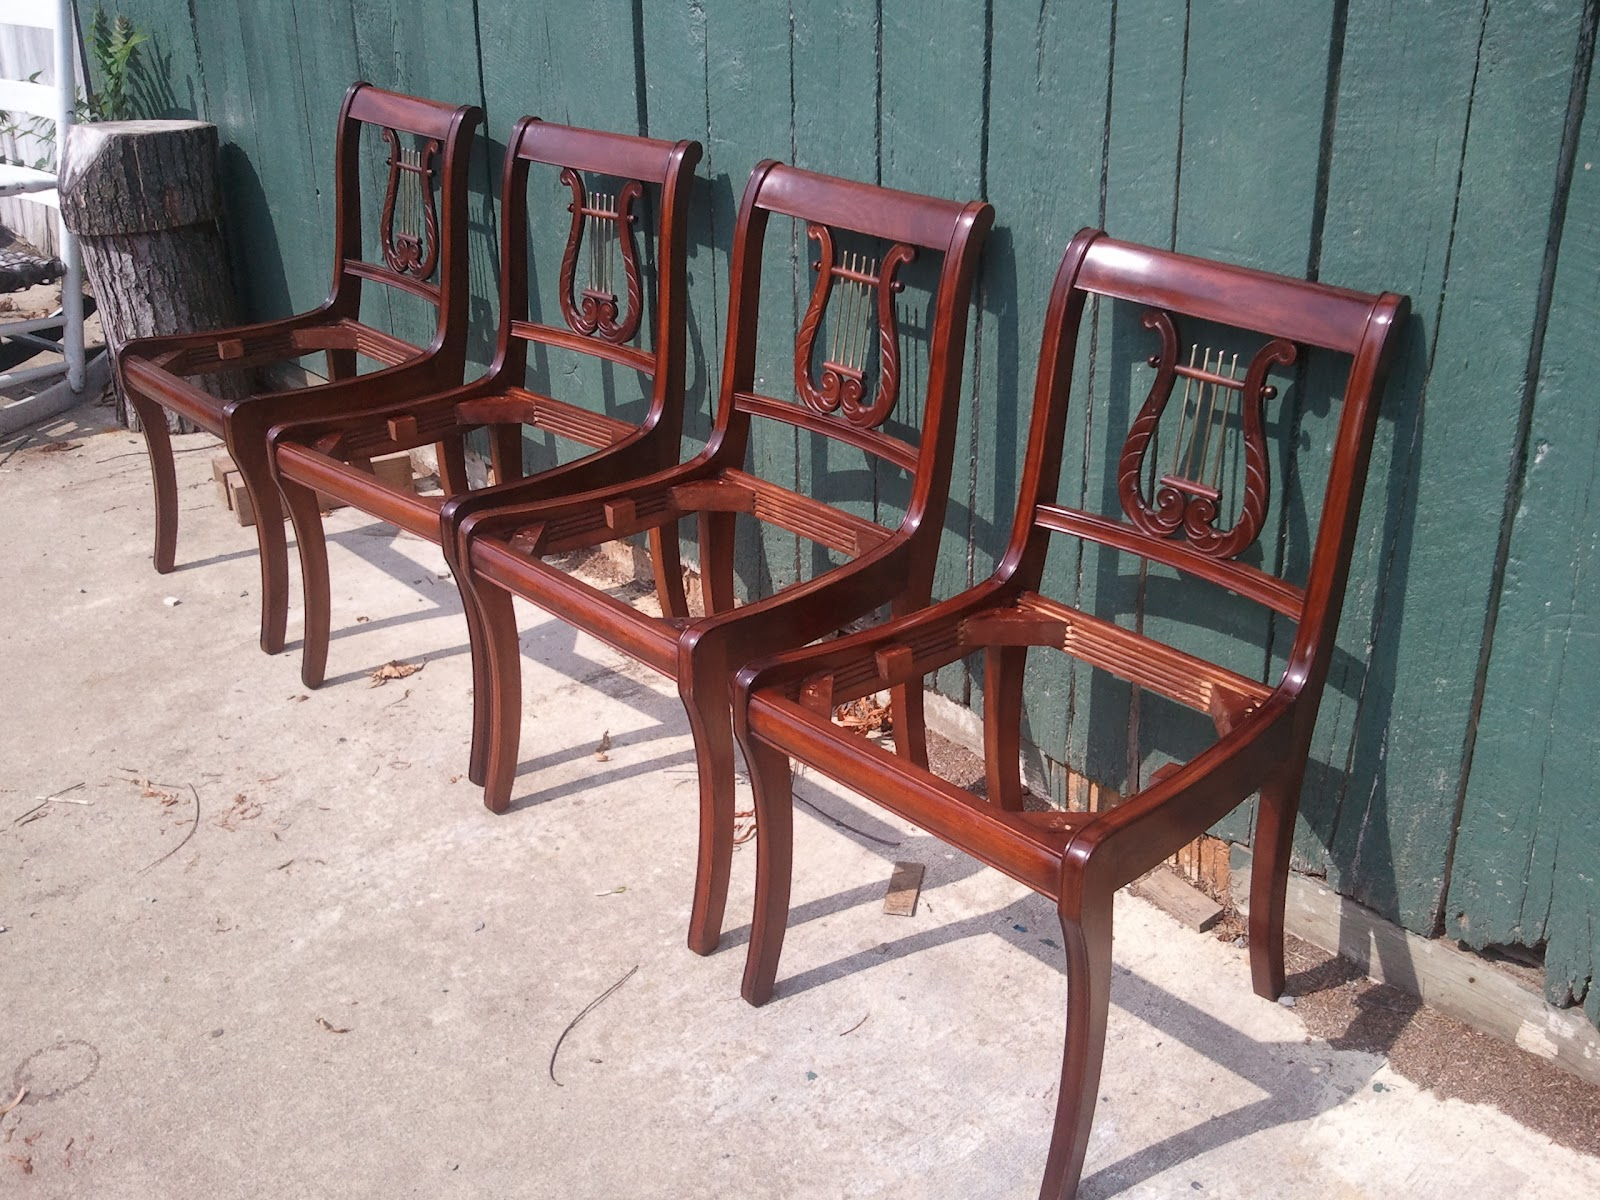 duncan phyfe chairs steel chair diy john mark power antiques conservator reproduction